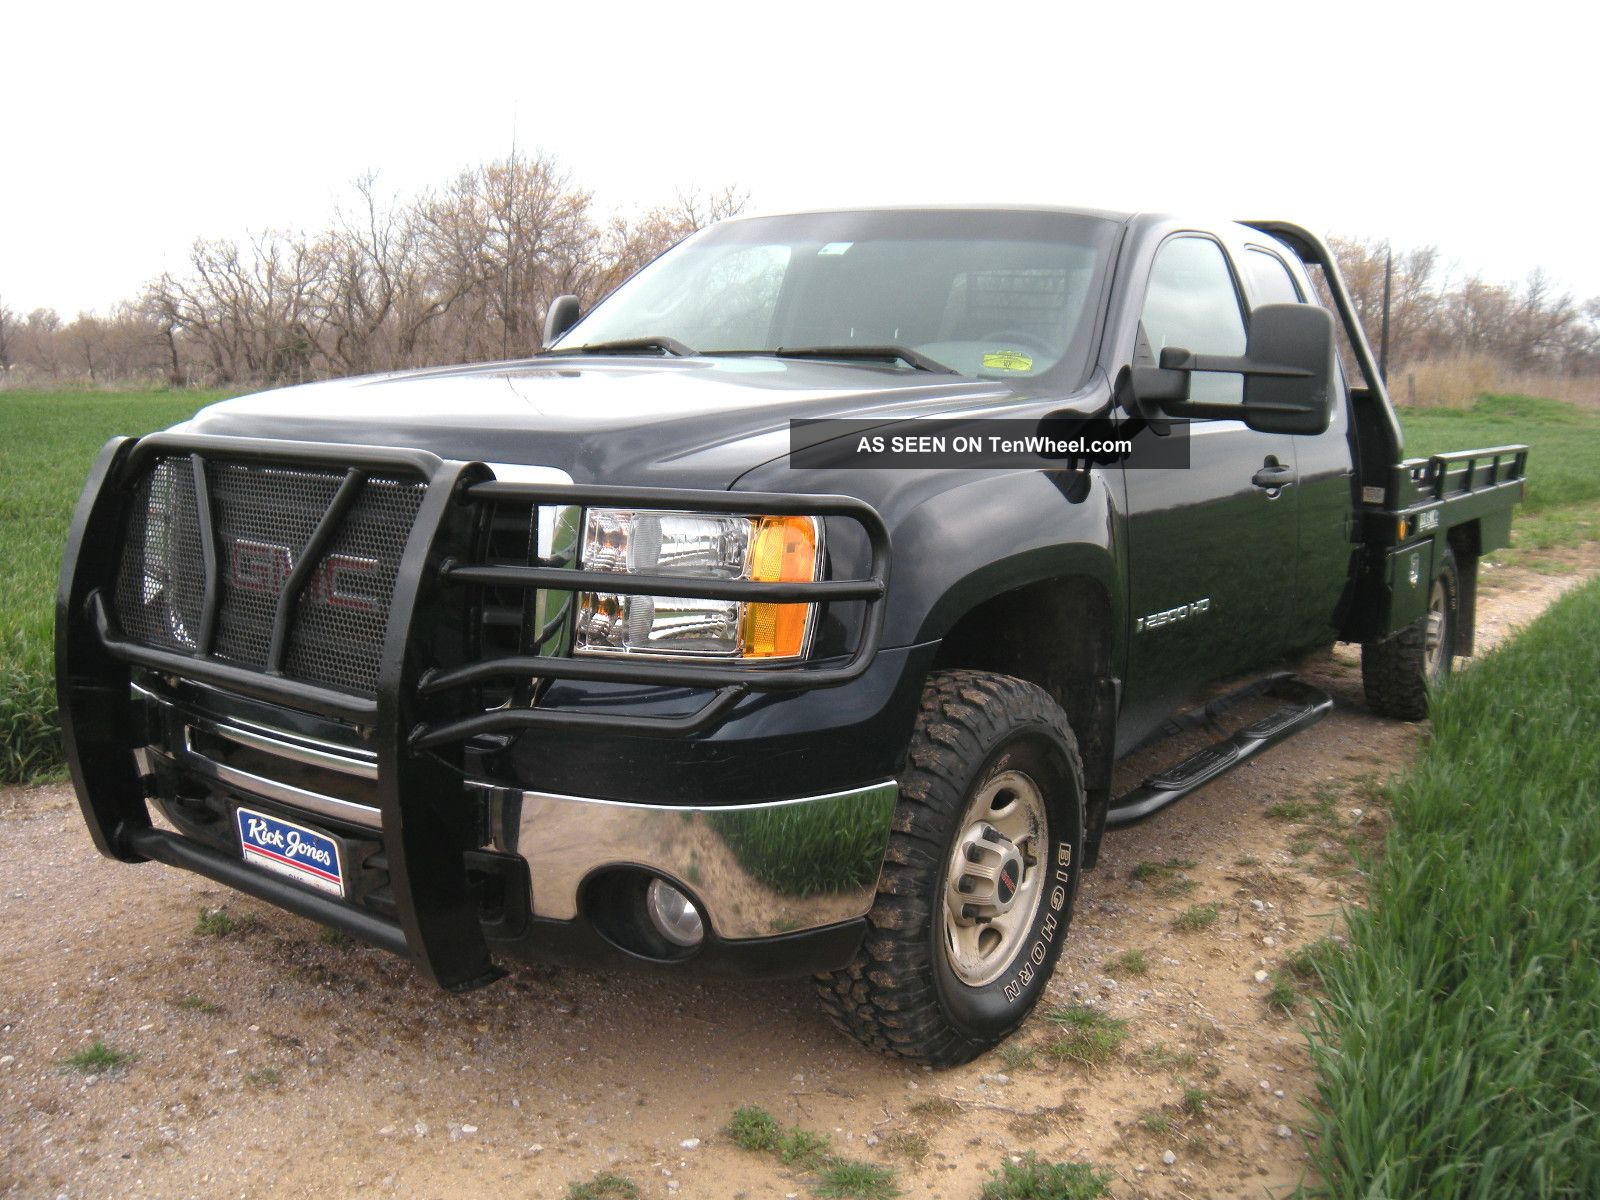 2008 gmc sierra 2500 hd 4x4 extended cab pickup bramco hay bale spike flatbed. Black Bedroom Furniture Sets. Home Design Ideas